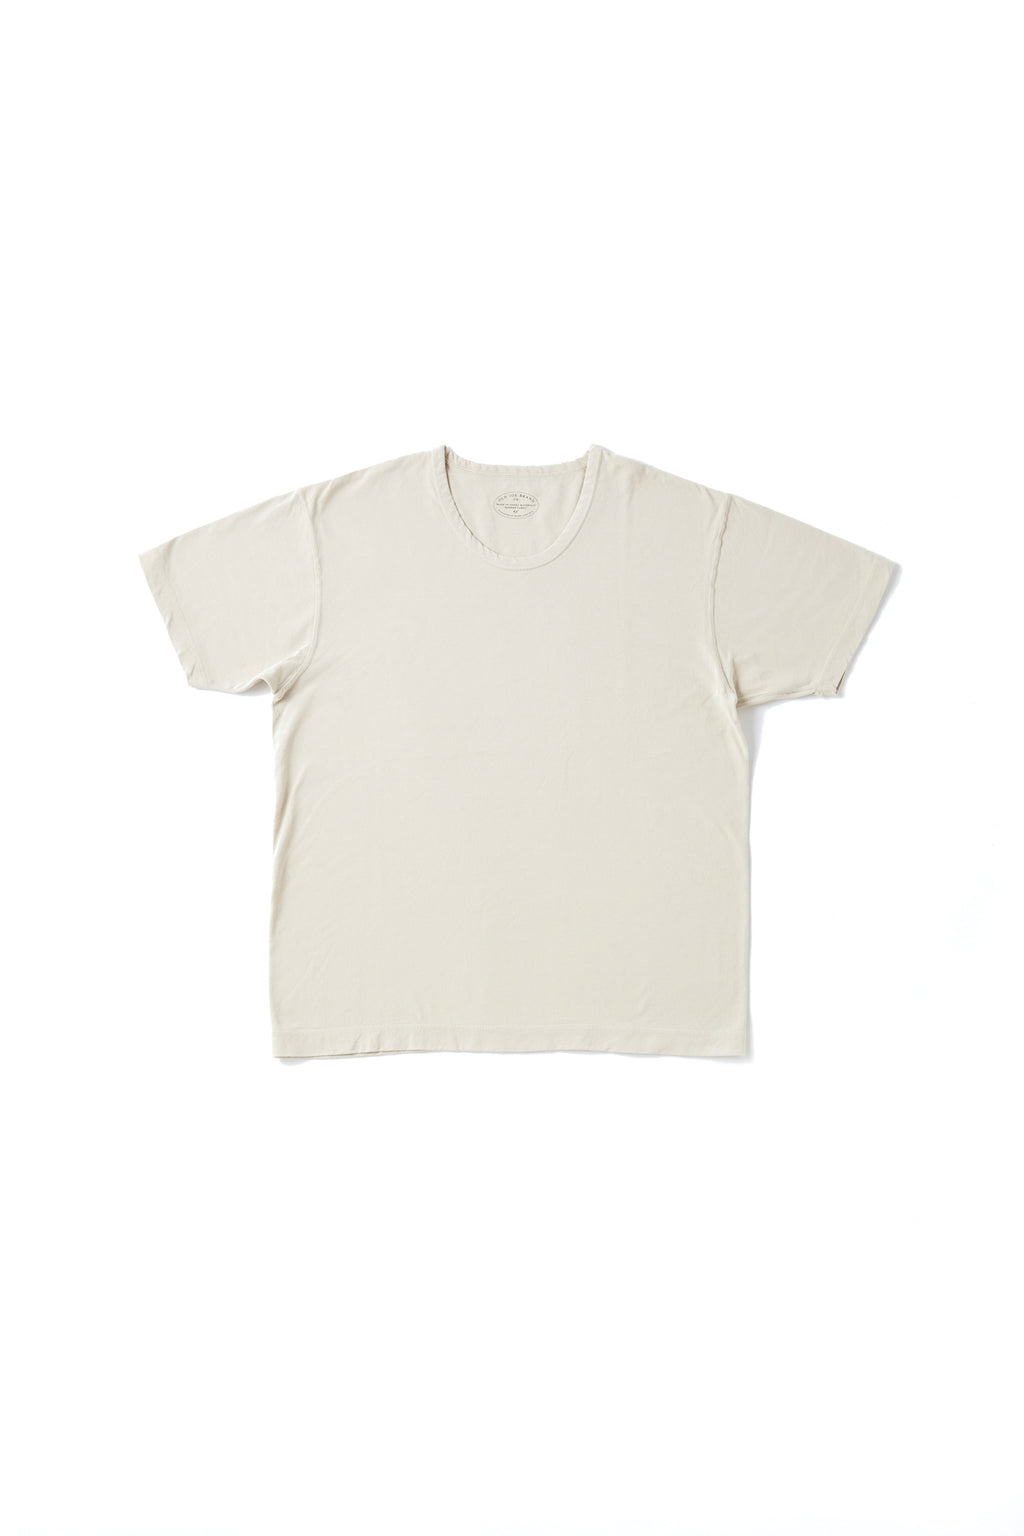 TUBE TEE(ROUND-NECK) - 201OJ-CT06